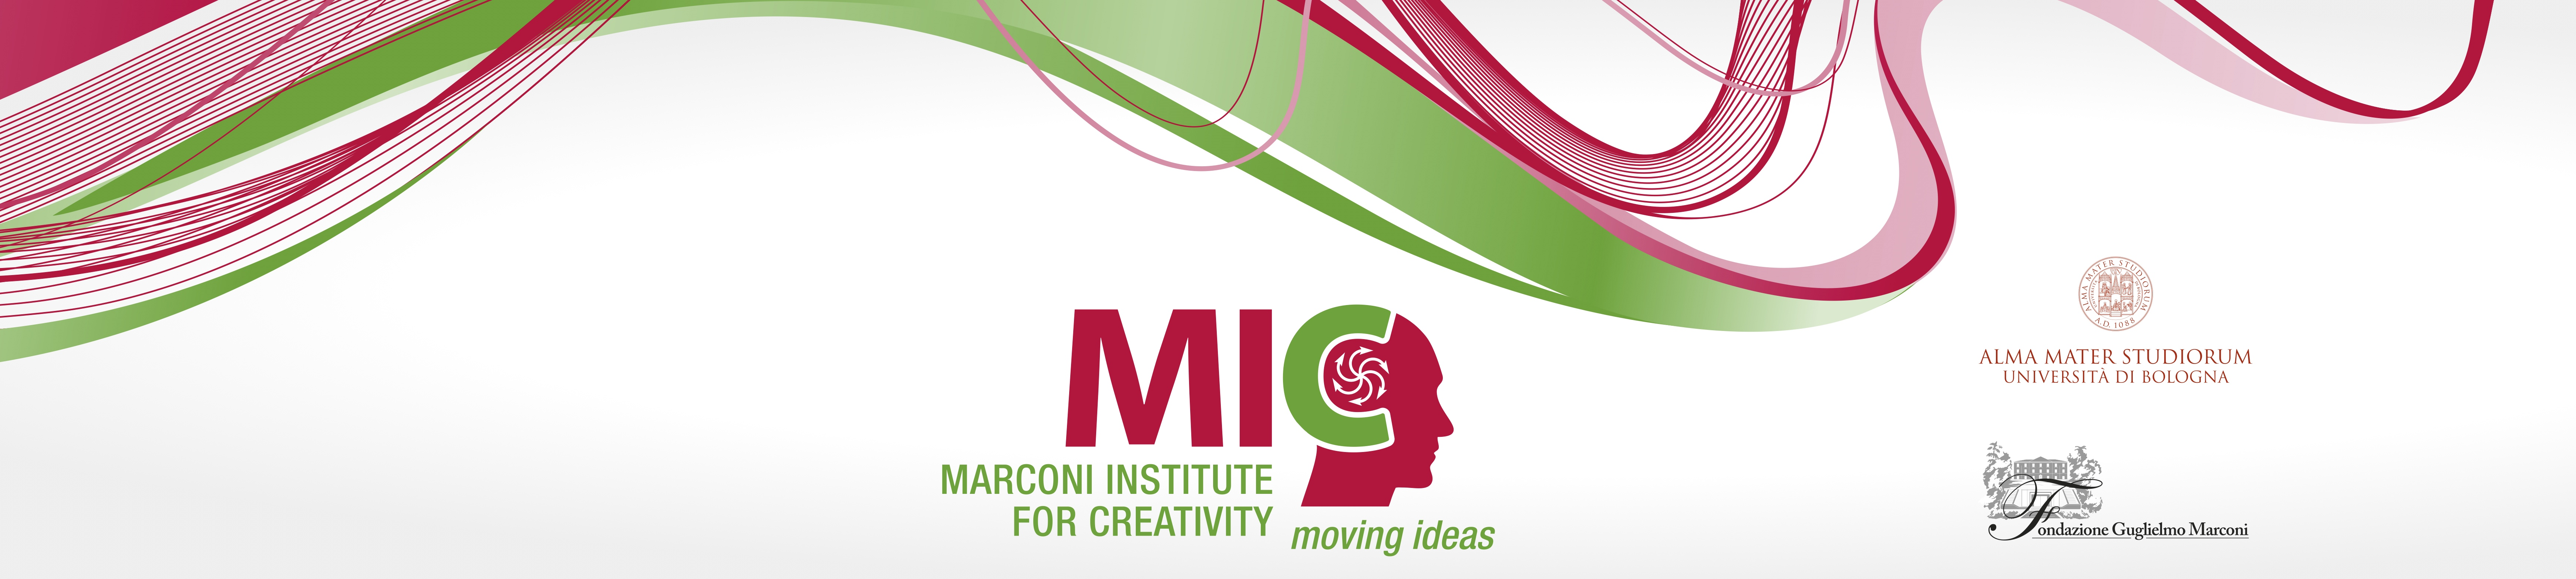 Marconi Institute for Creativity